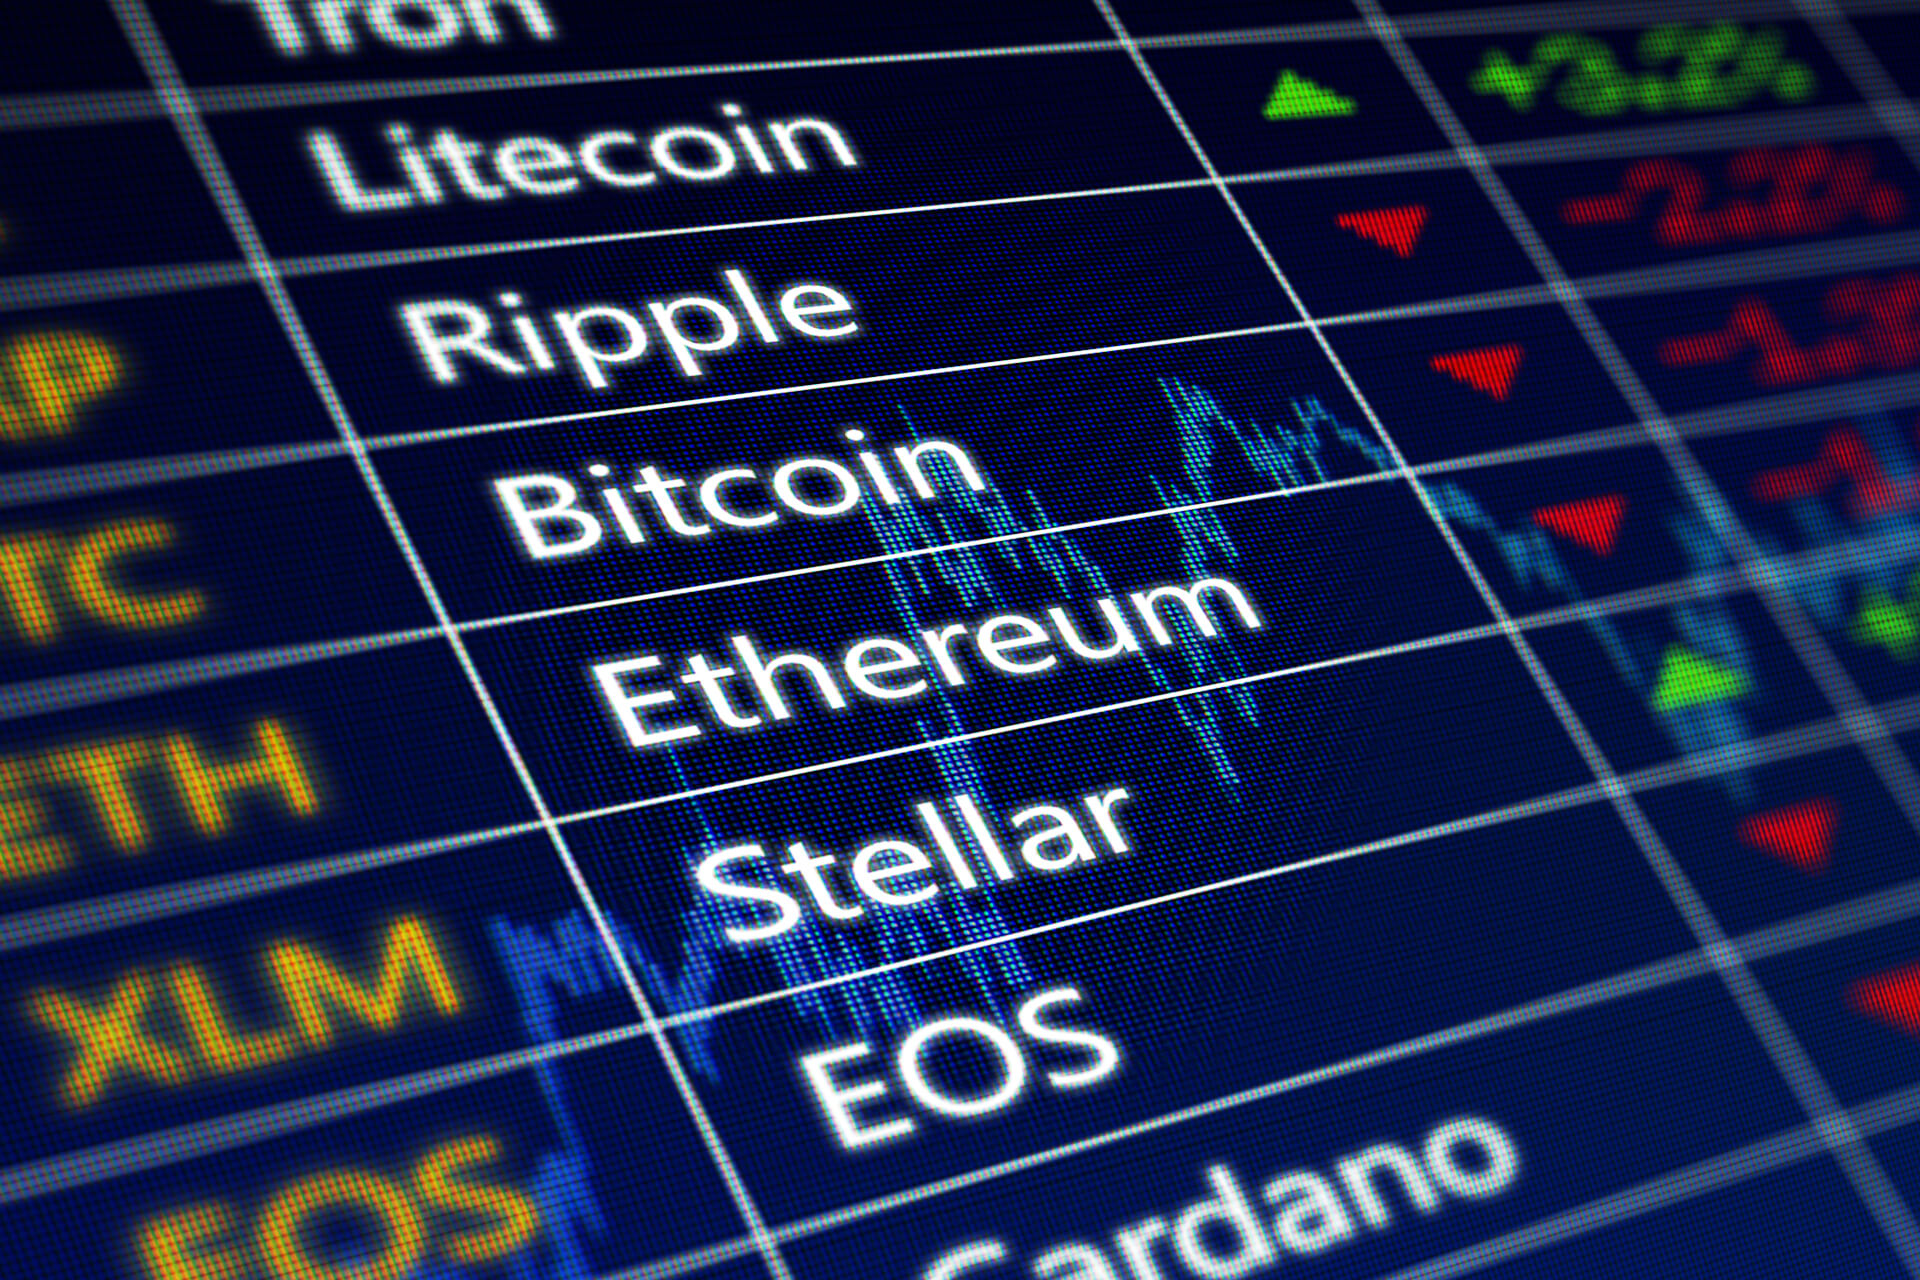 Cryptocurrency Stock Trends Free Image Download